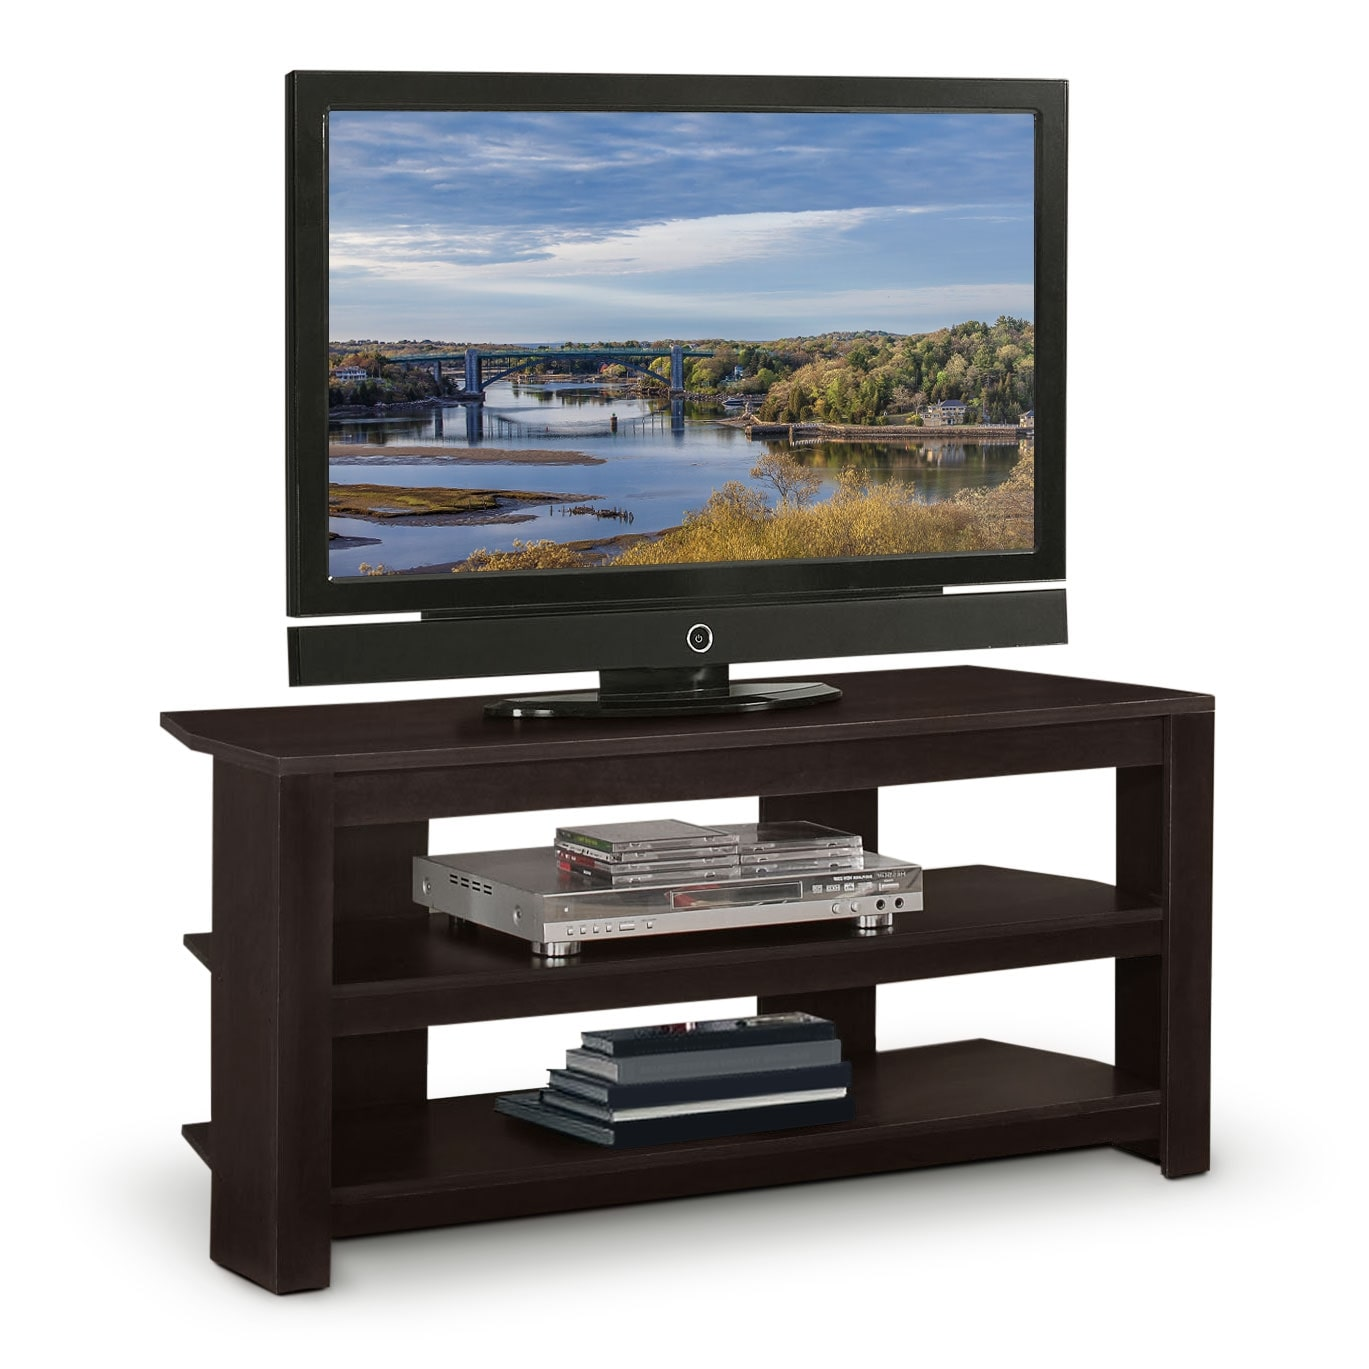 Dimension Table Tv Fenrez Com Sammlung Von Design Zeichnungen  # Table Tele Dimension